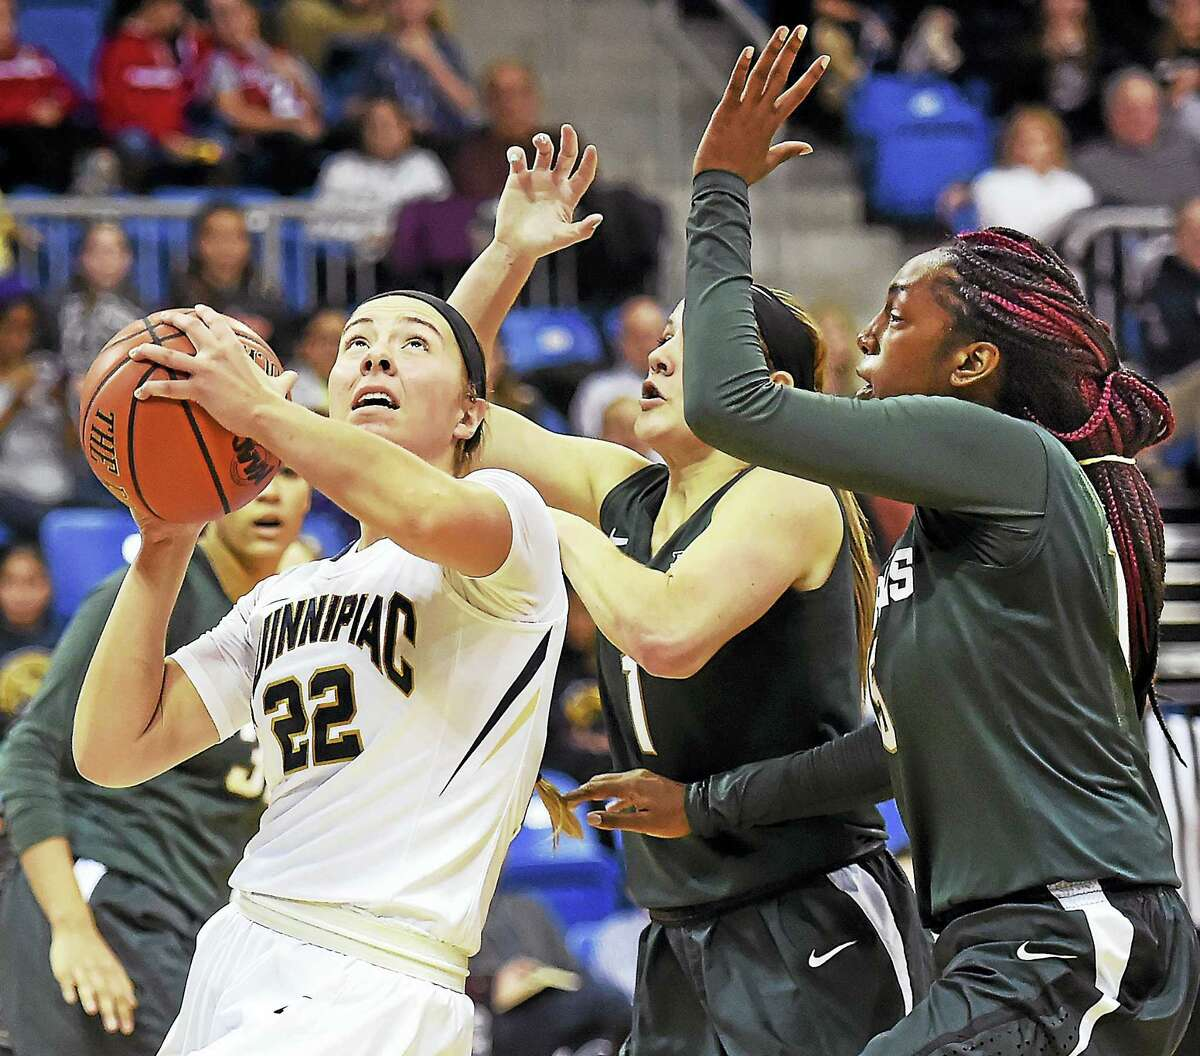 Quinnipiac junior guard Brittany Johnson looks for the hoop as Michigan State's Tori Jankoska (1) and Victoria Gaines (15) defend in a 71-54 loss for the Bobcats Tuesday at the TD North Sports Center at Quinnipiac University.